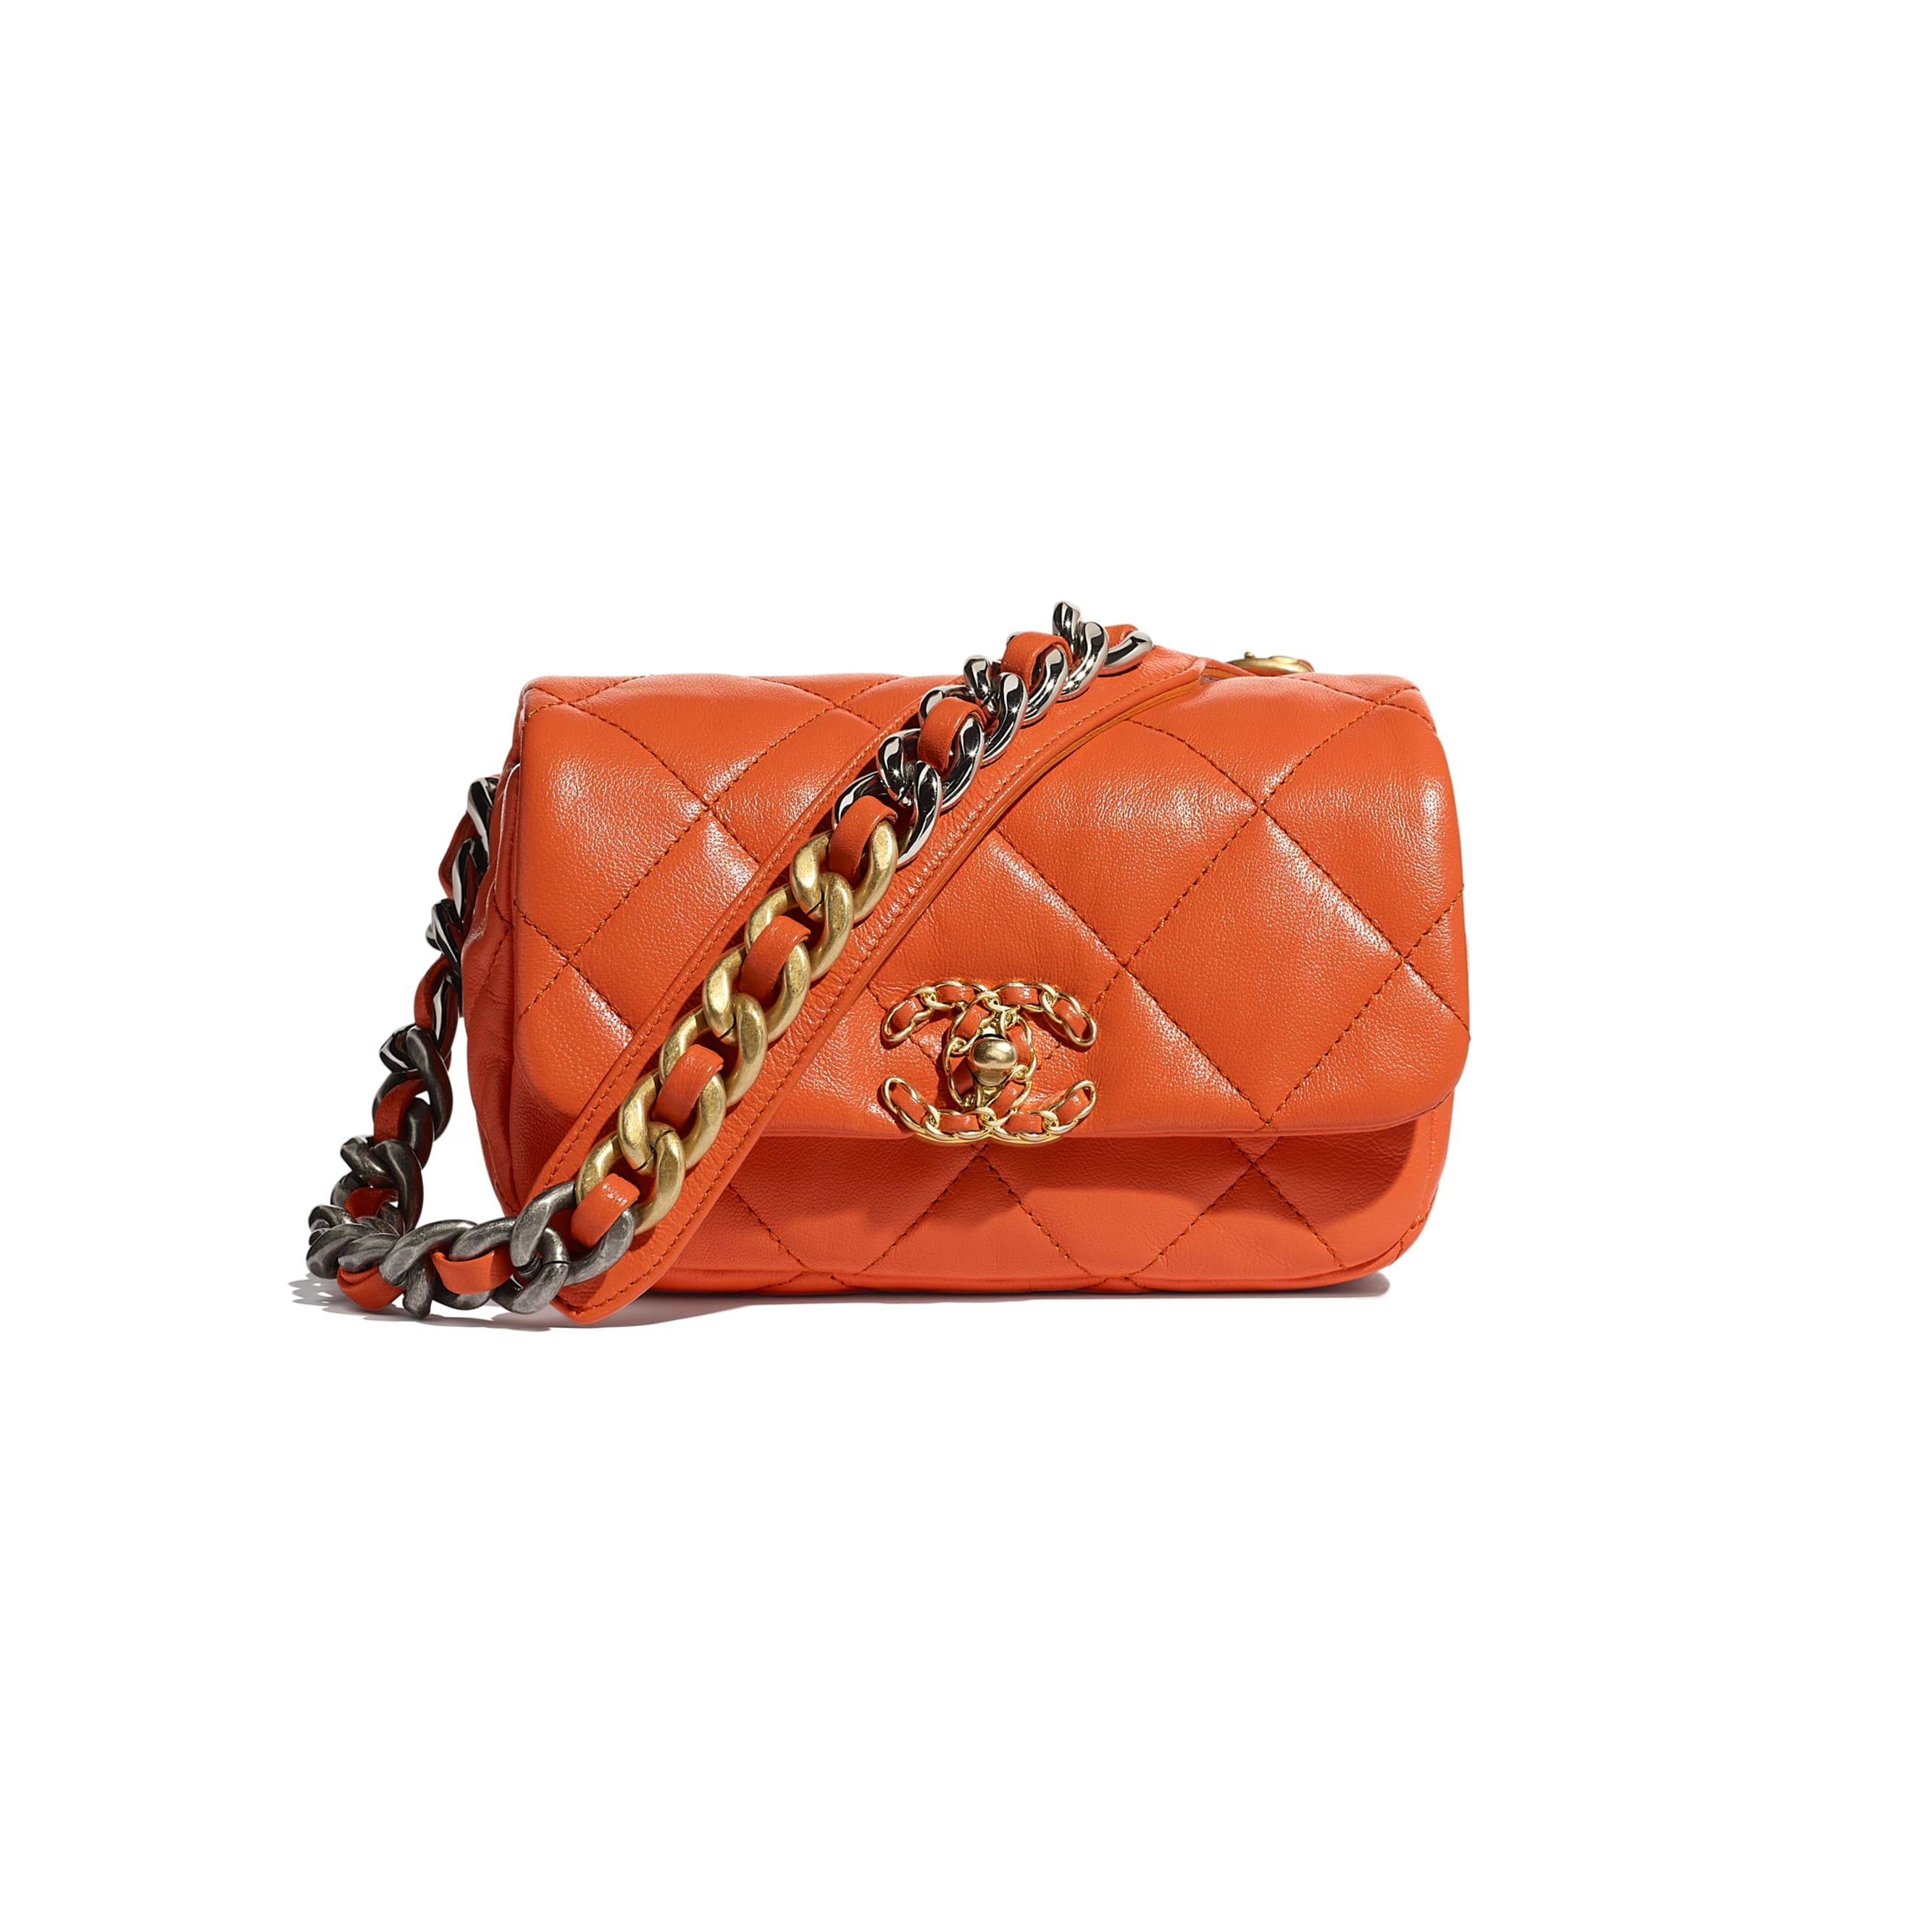 CHANEL 19 Waist Bag - Orange - Lambskin, Gold-Tone, Silver-Tone & Ruthenium-Finish Metal - Default view - see standard sized version